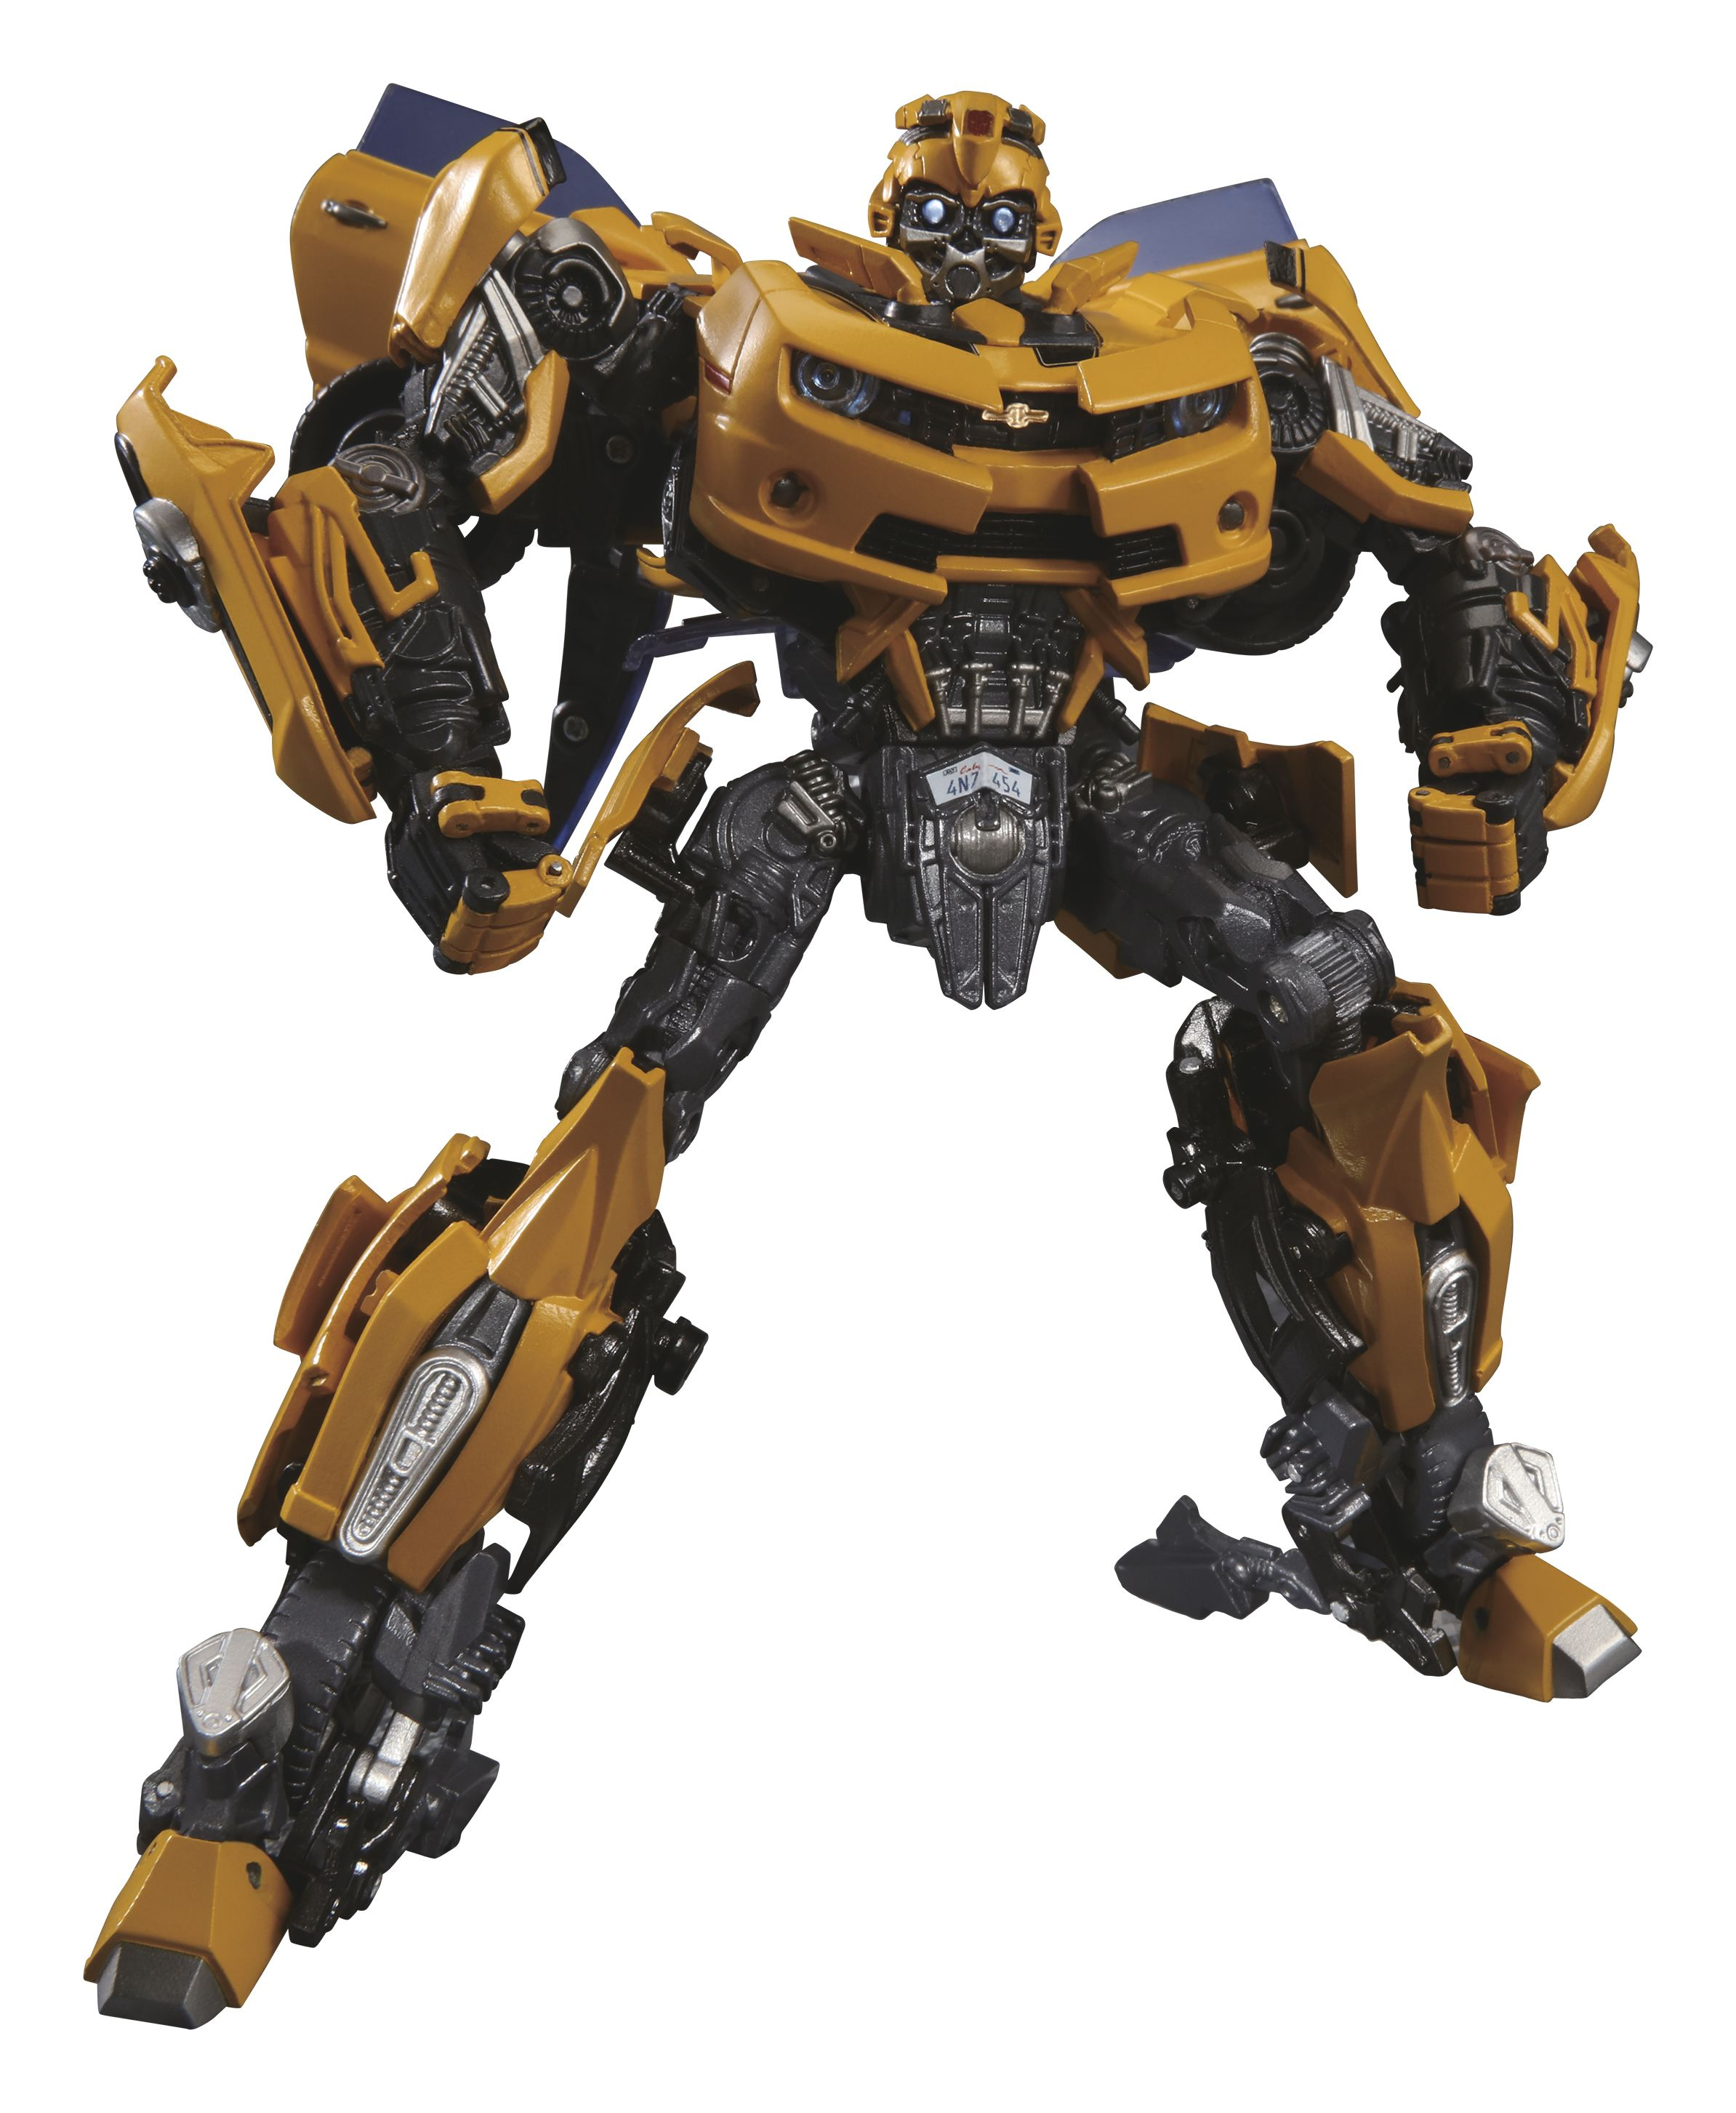 shadow spark optimus and masterpiece movie bumblebee official images transformers news tfw2005. Black Bedroom Furniture Sets. Home Design Ideas